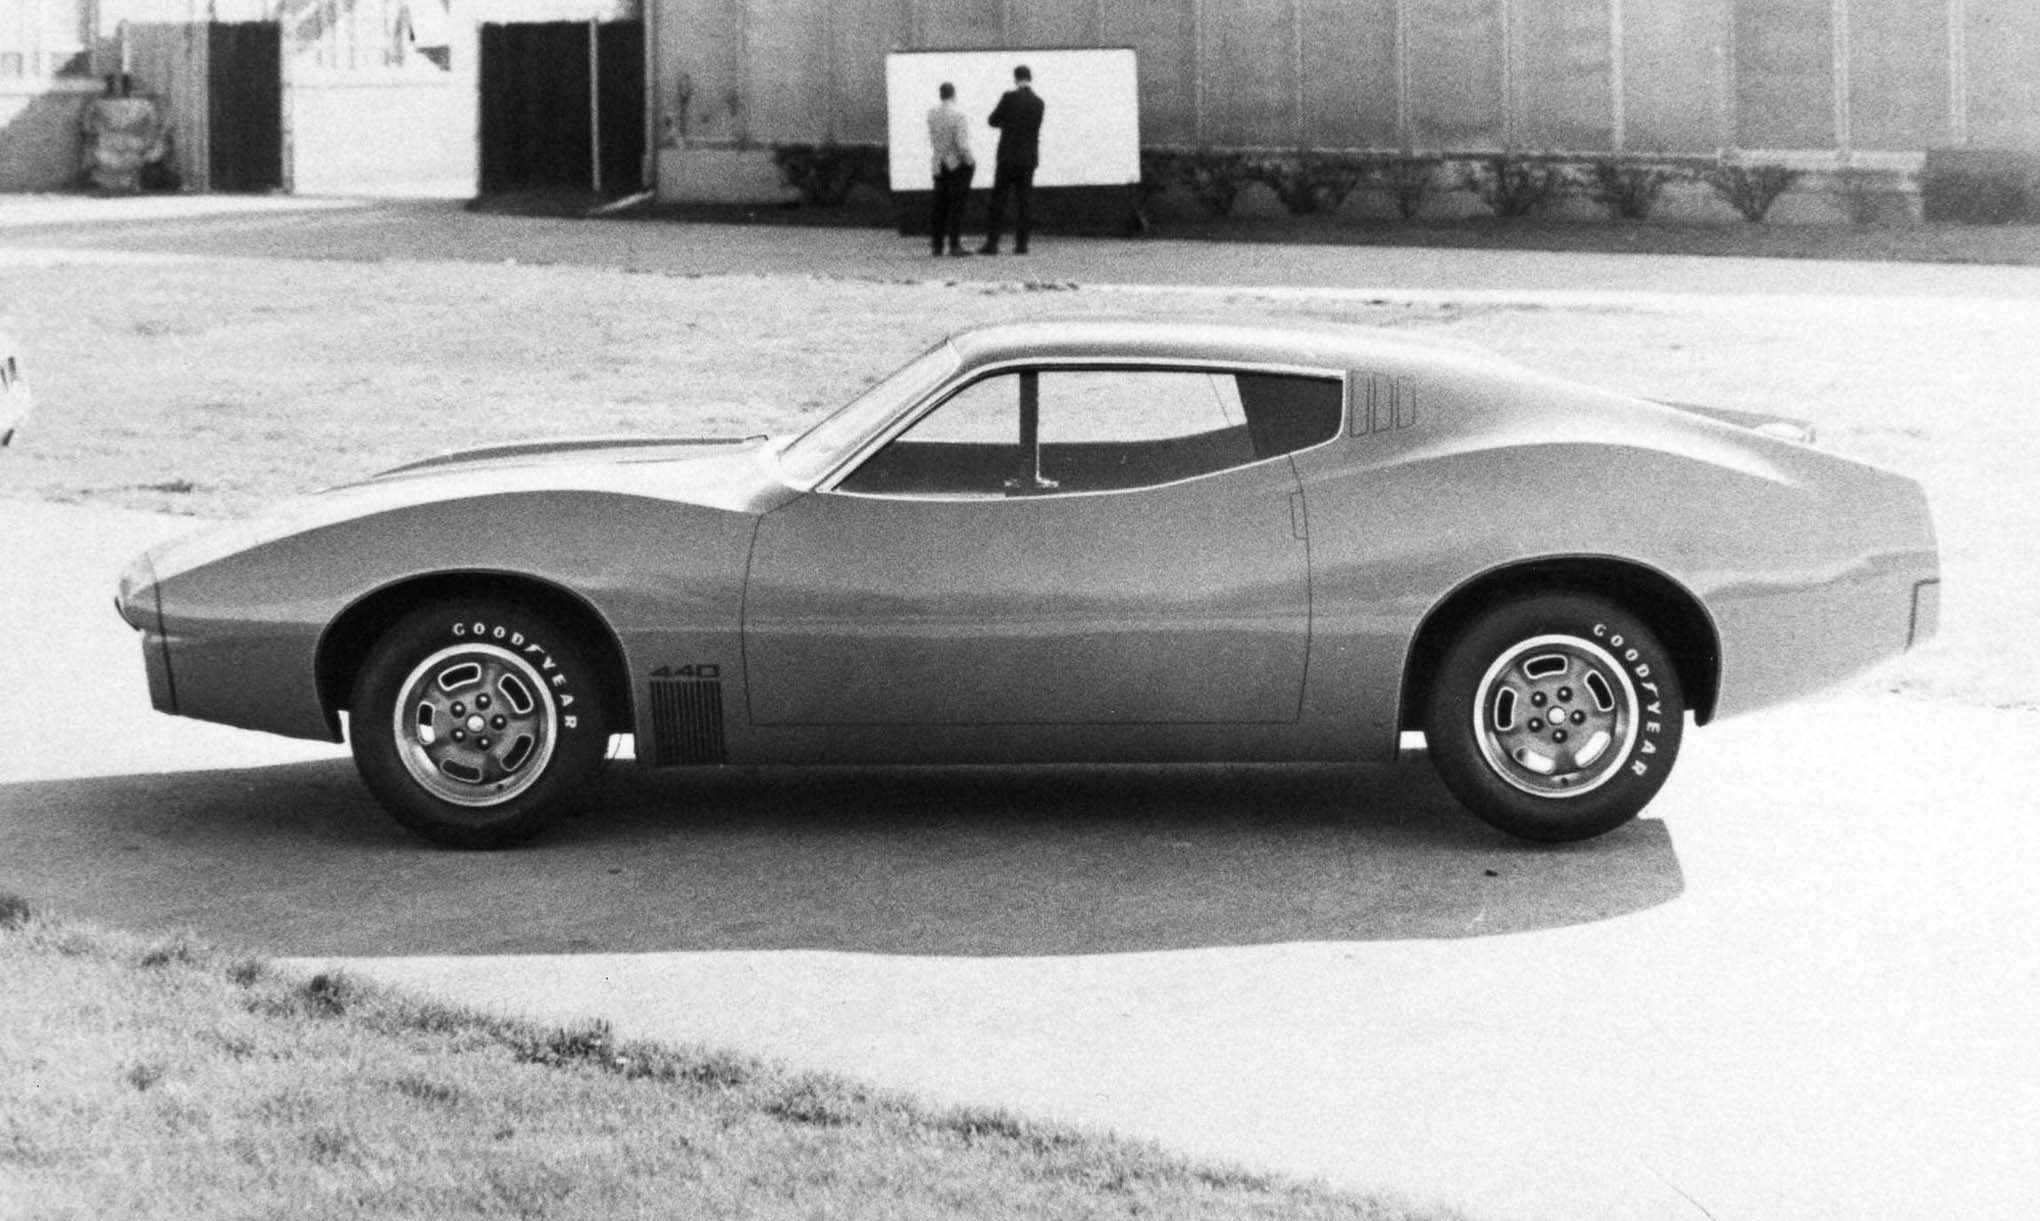 Don Hood had left GM in 1968 to join the Plymouth Styling Studio. His clay, shown on May 2, 1969, showed a lower rocker and more radiused wheel openings. The strong ramps on the front fenders and the rear quarters impart a balance with equal overhang at both ends.